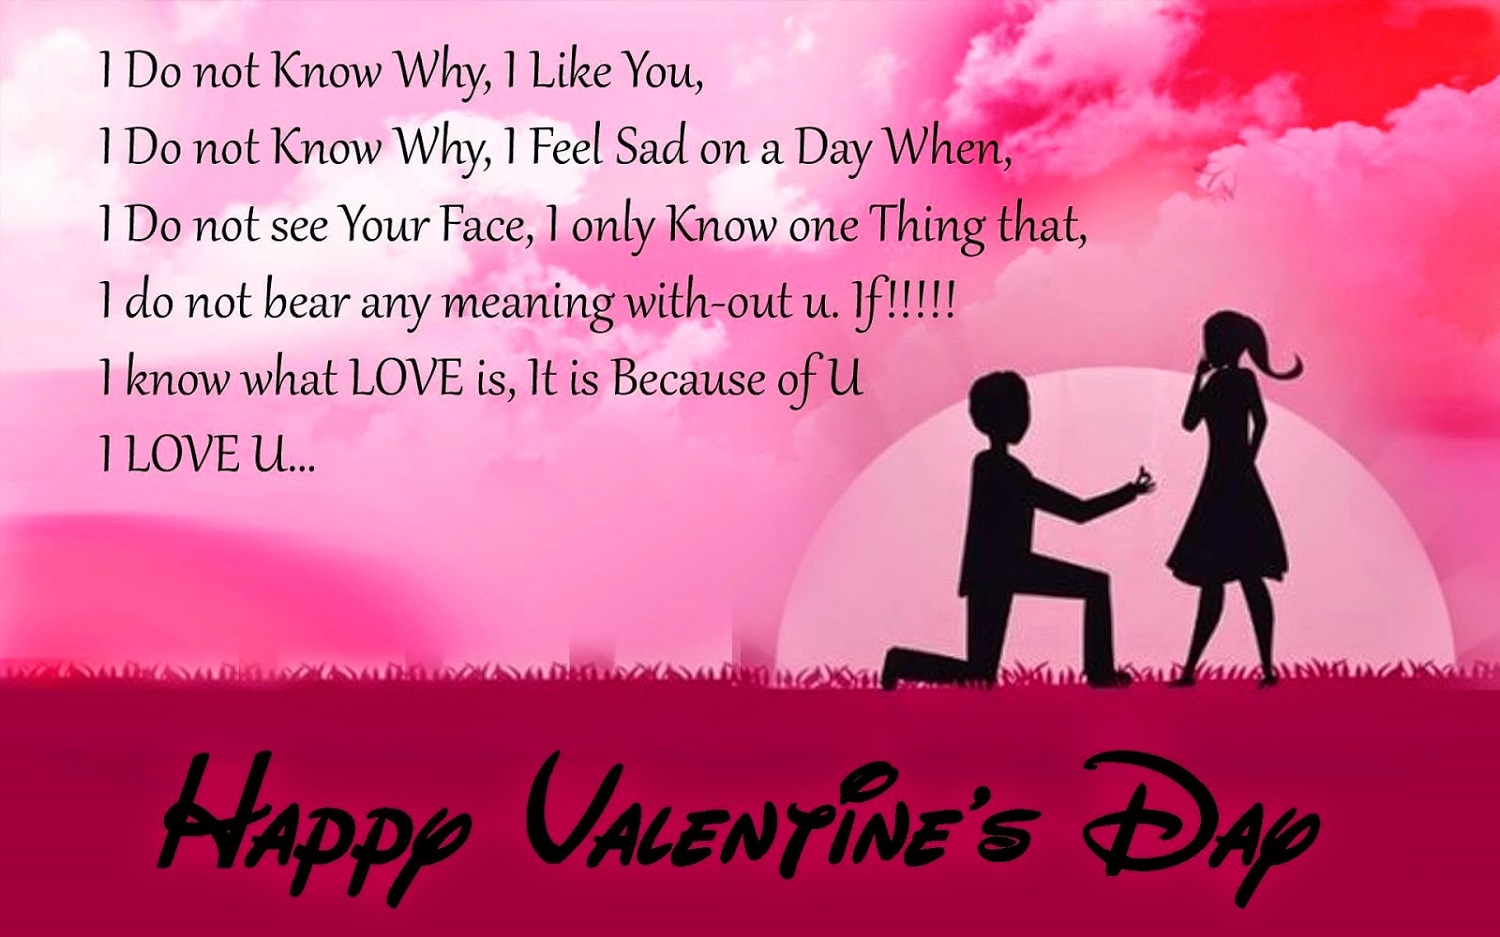 happy valentines day facebook status images